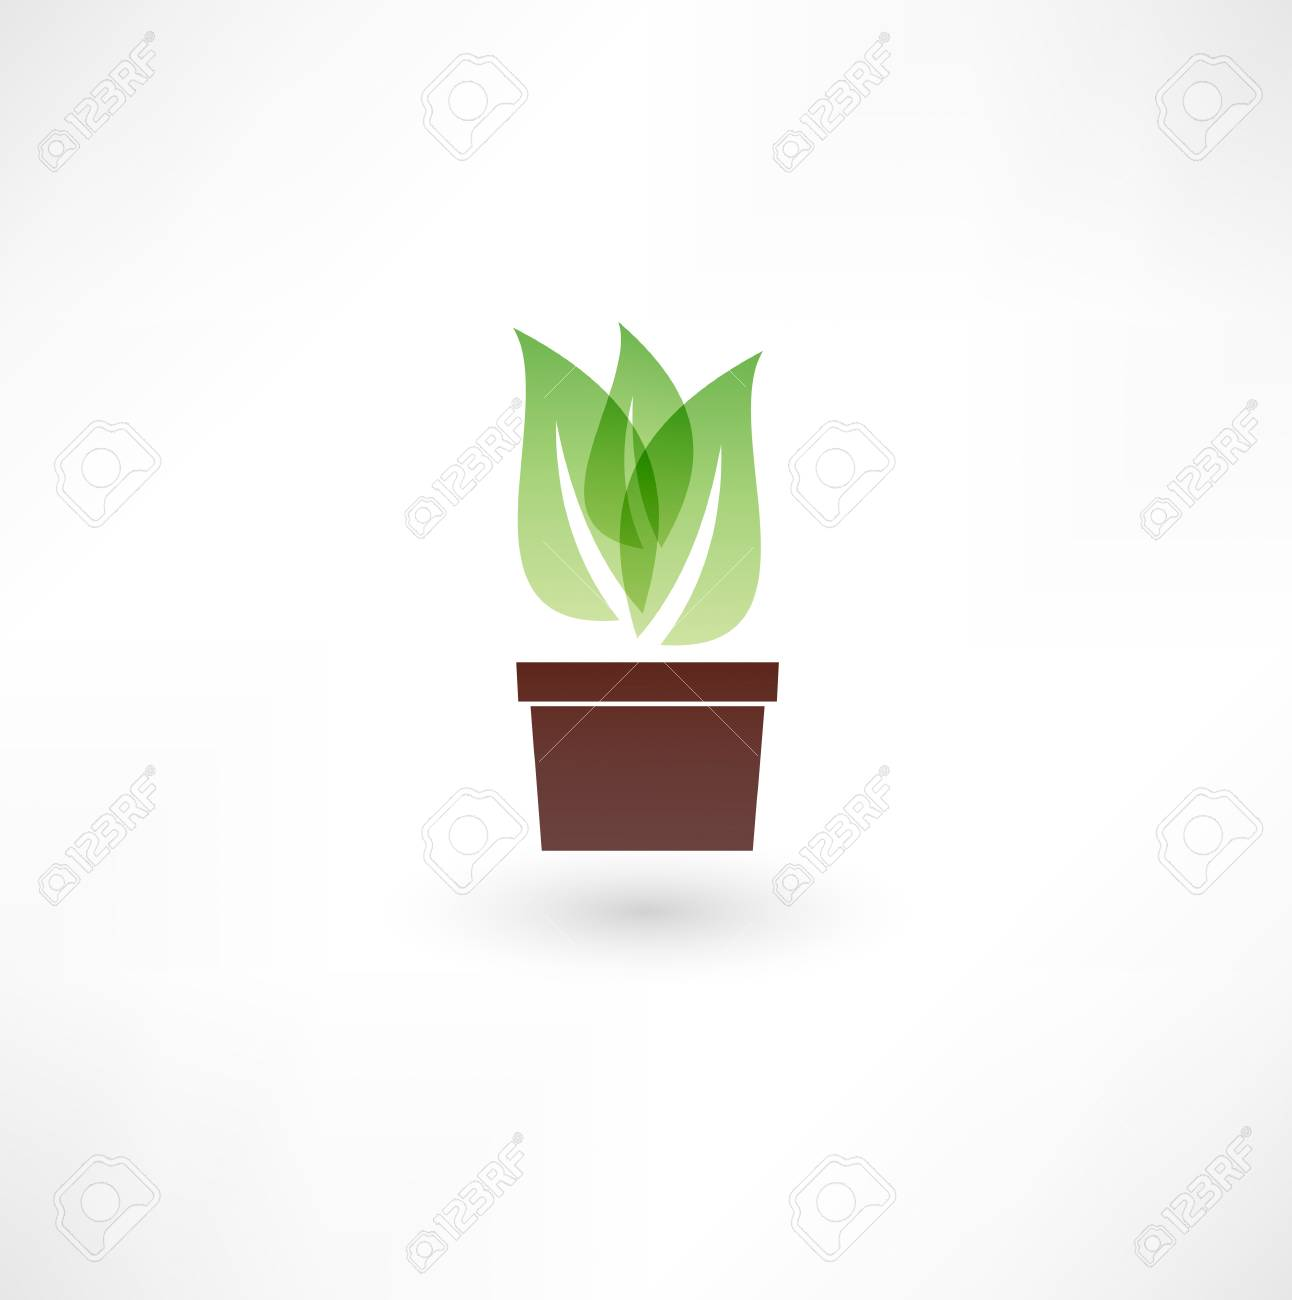 Flower in a pot icon Stock Vector - 18035541